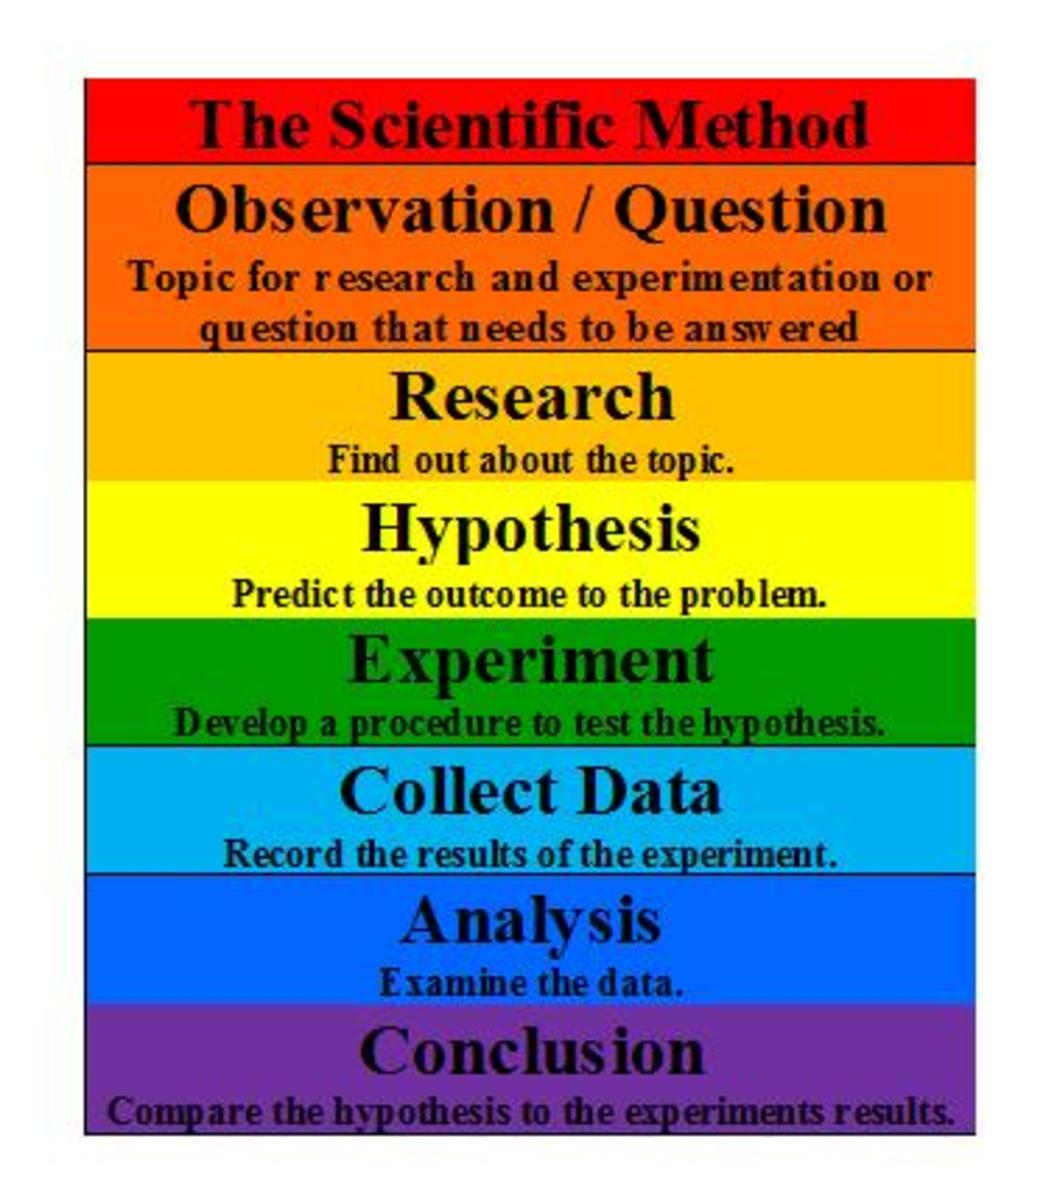 The Steps of the Scientific Method.